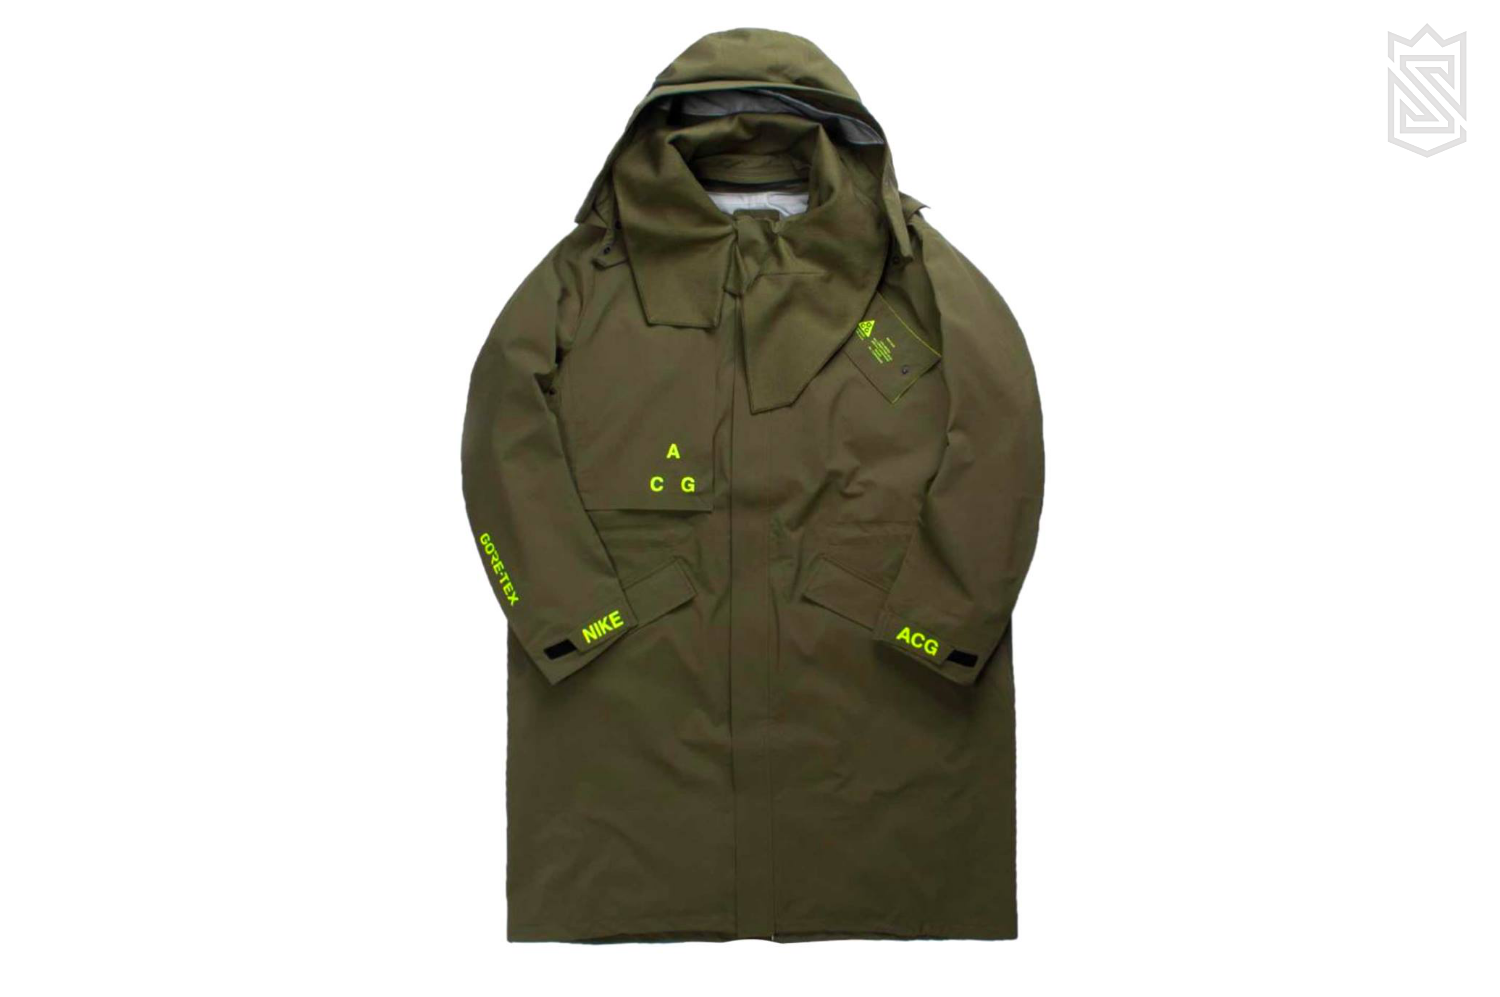 LAB NRG ACG Gore-tex Coat